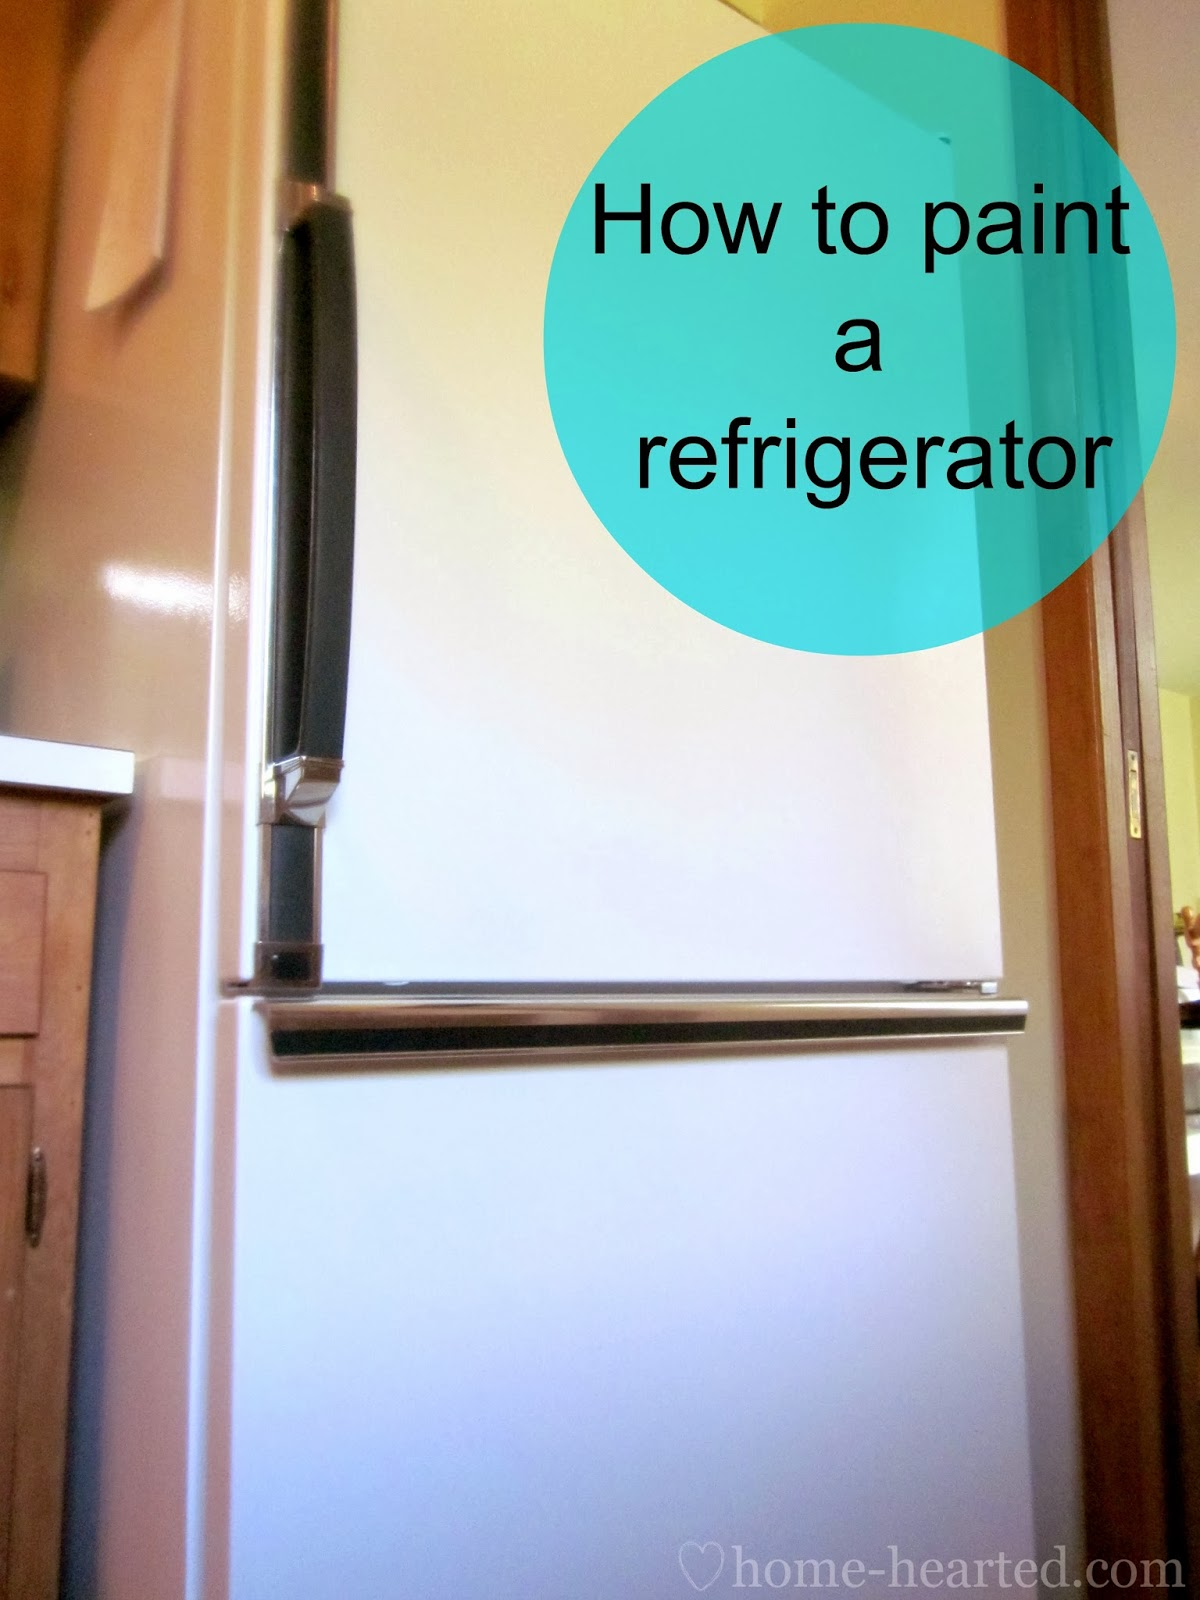 How to Paint a Refrigerator Easily